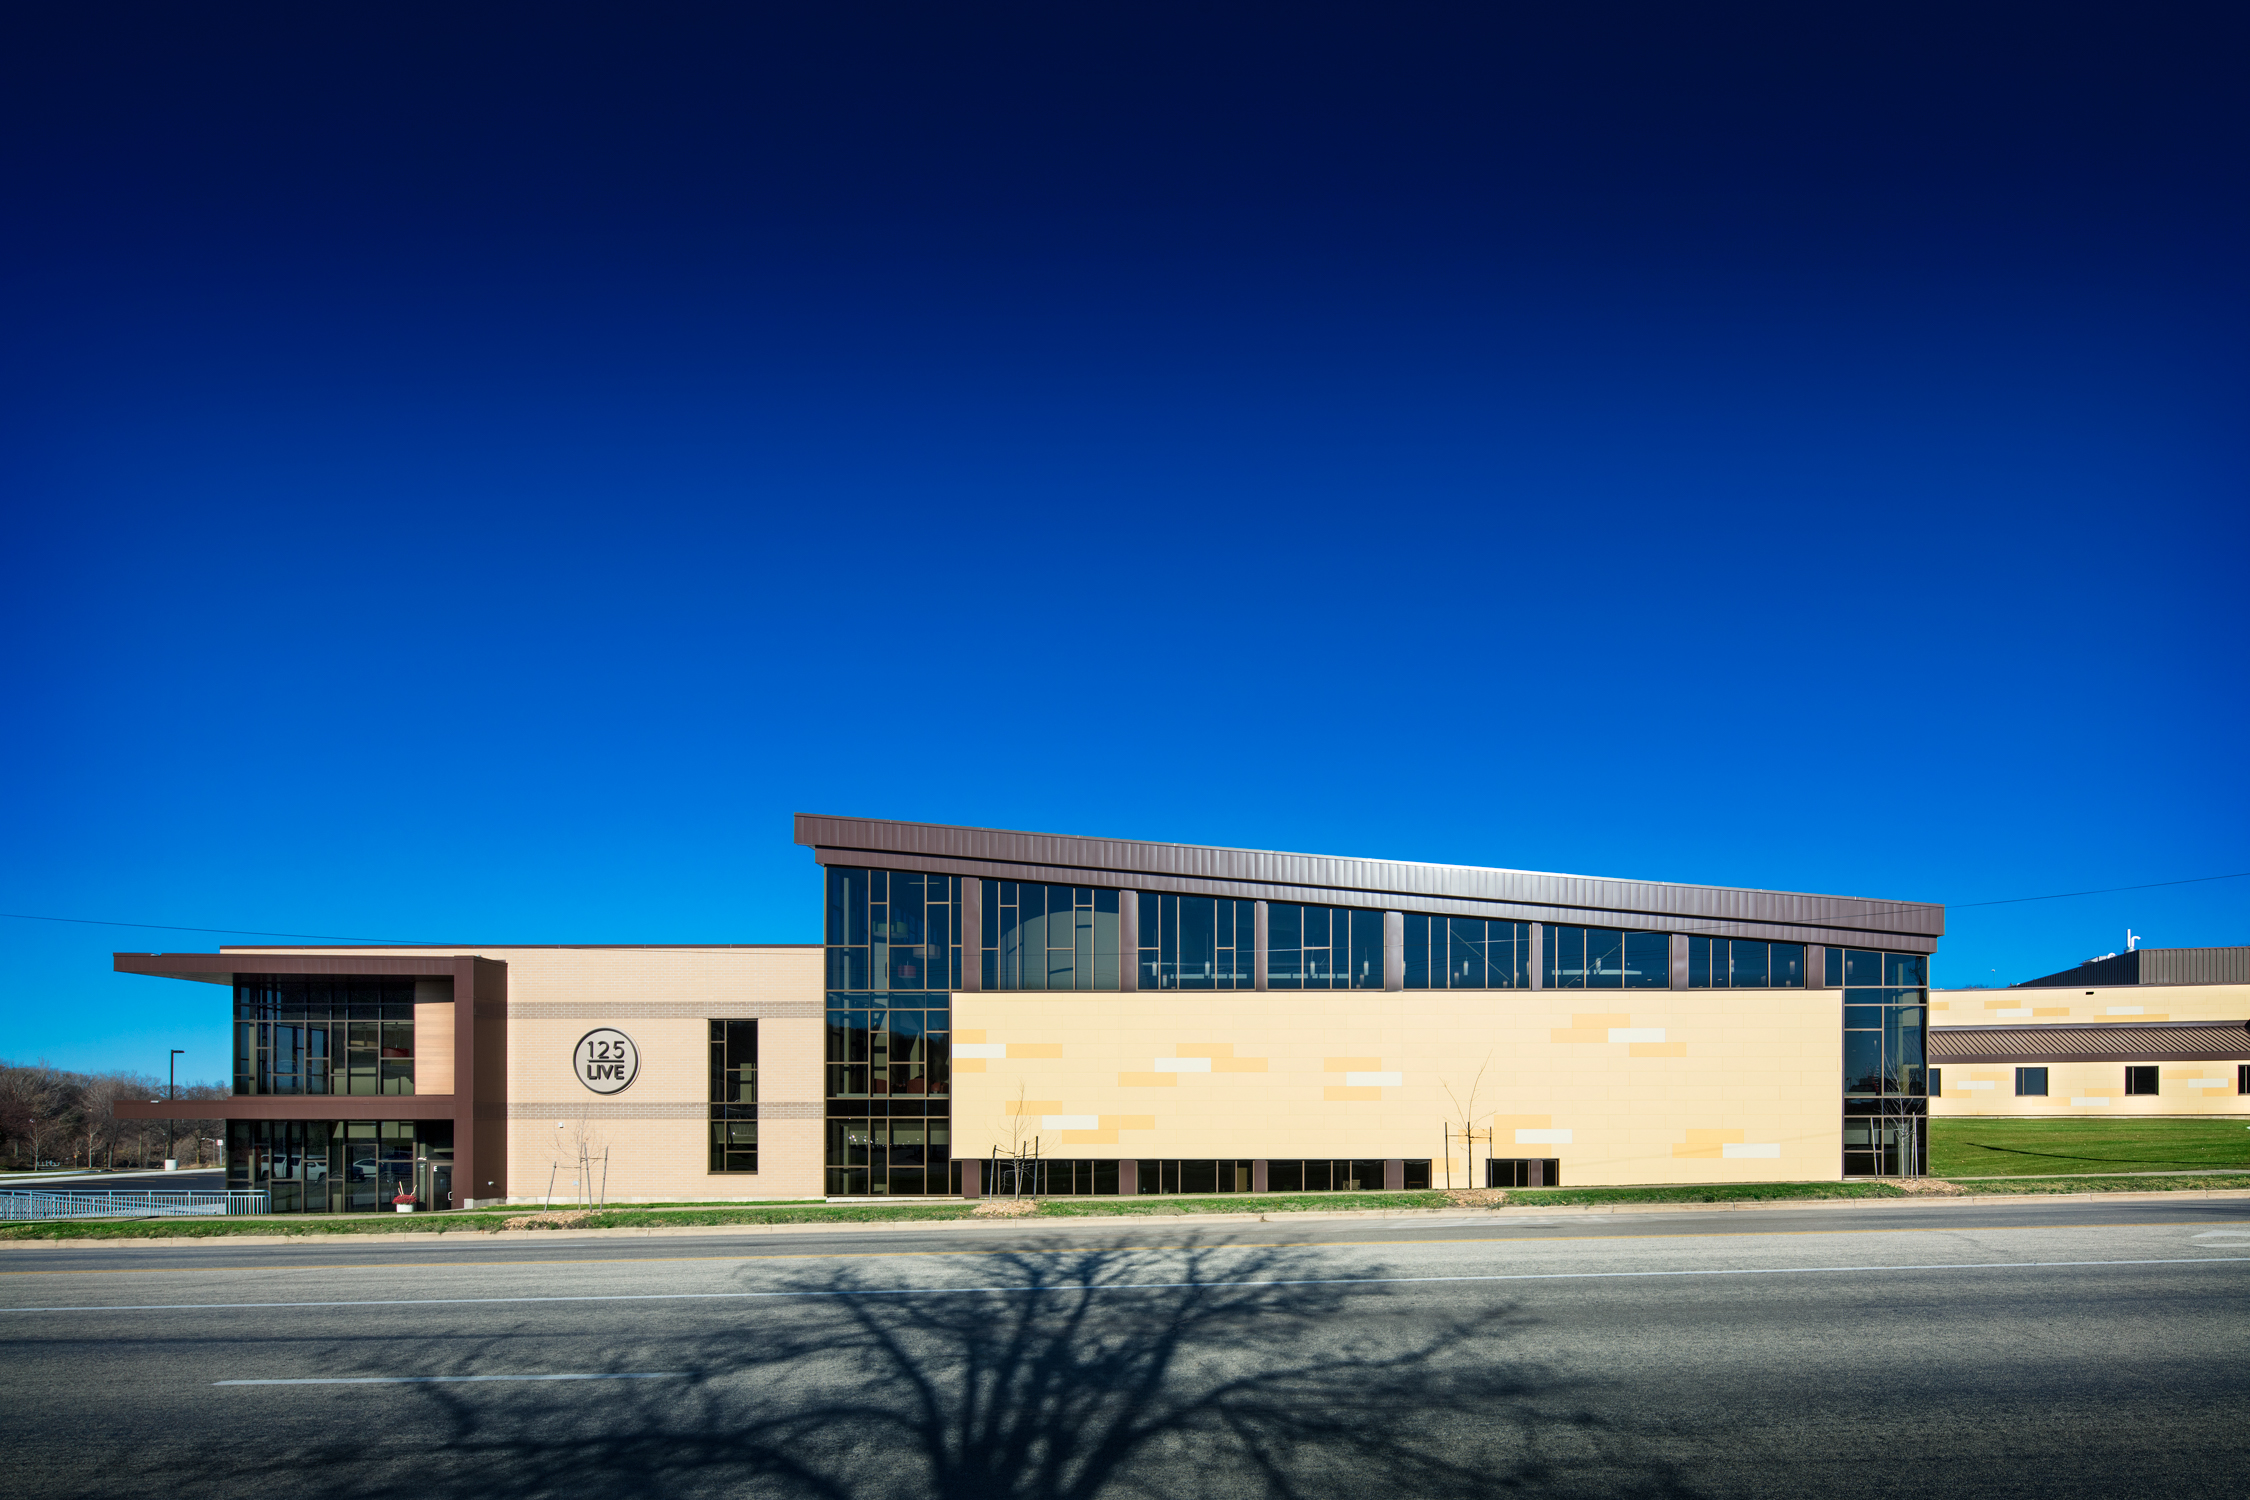 Rochester Recreation Center and 125 LIVE Center for Active Adults